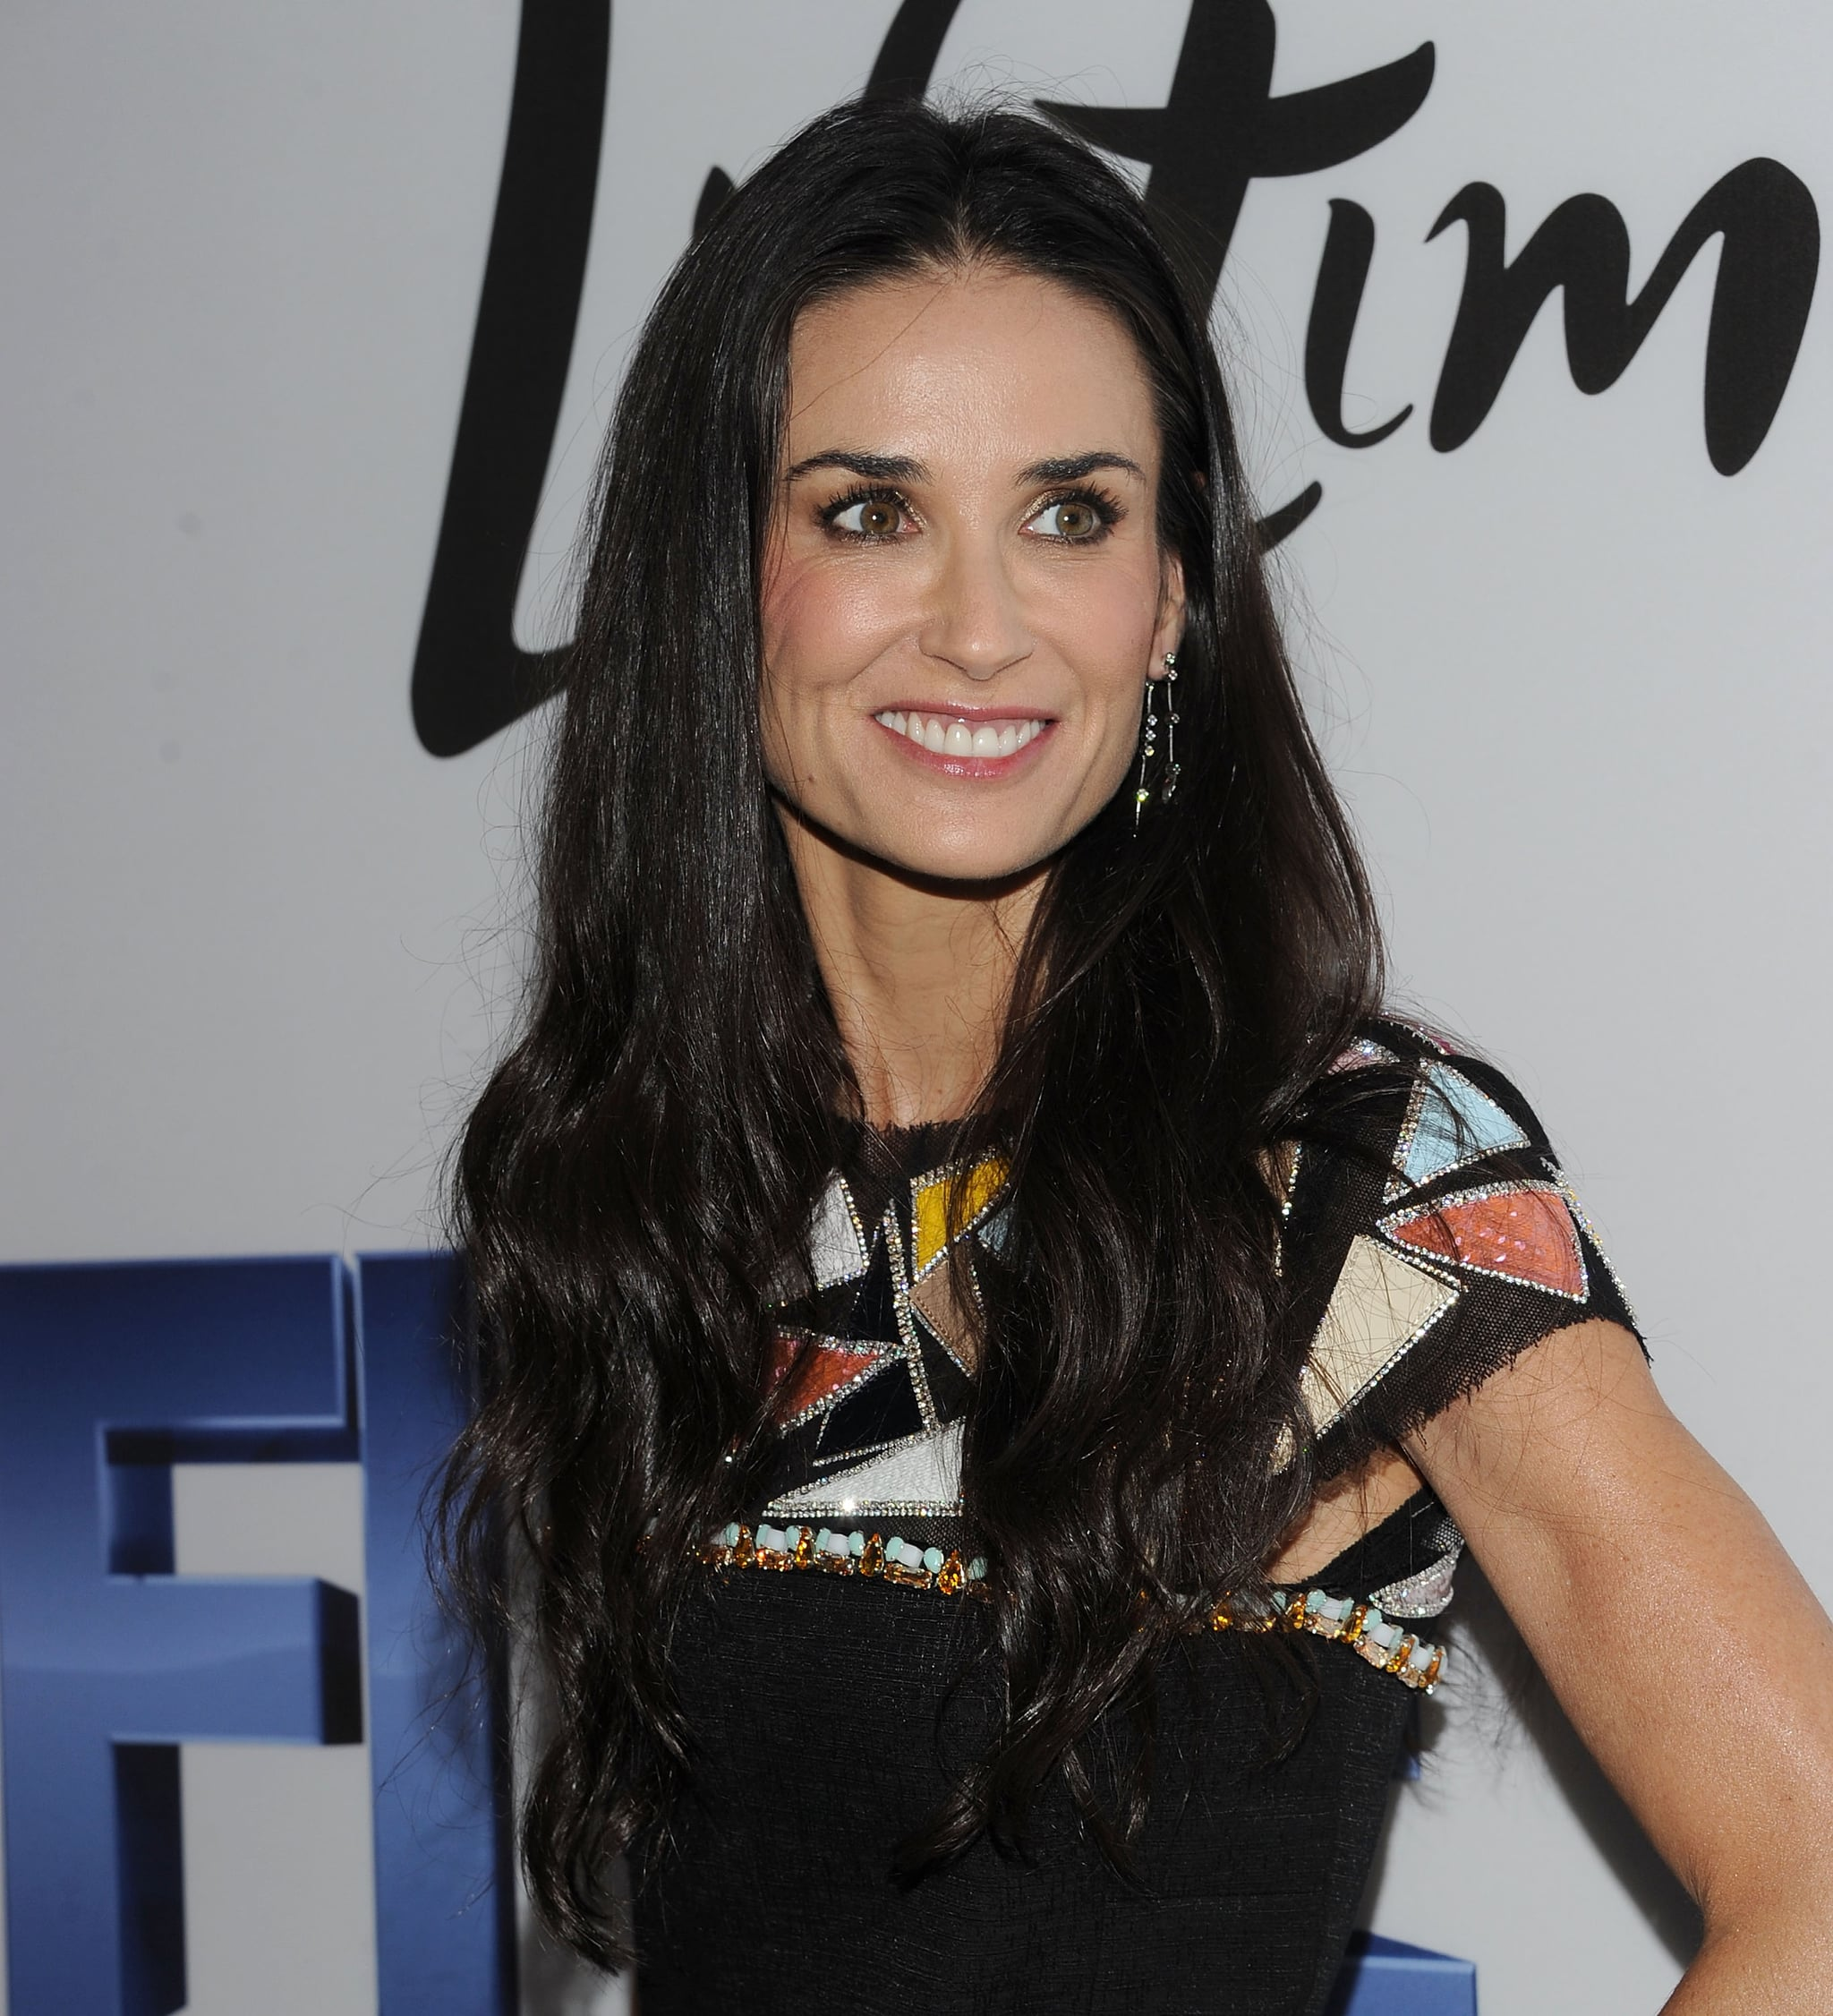 Demi Moore on the blue carpet in NYC.